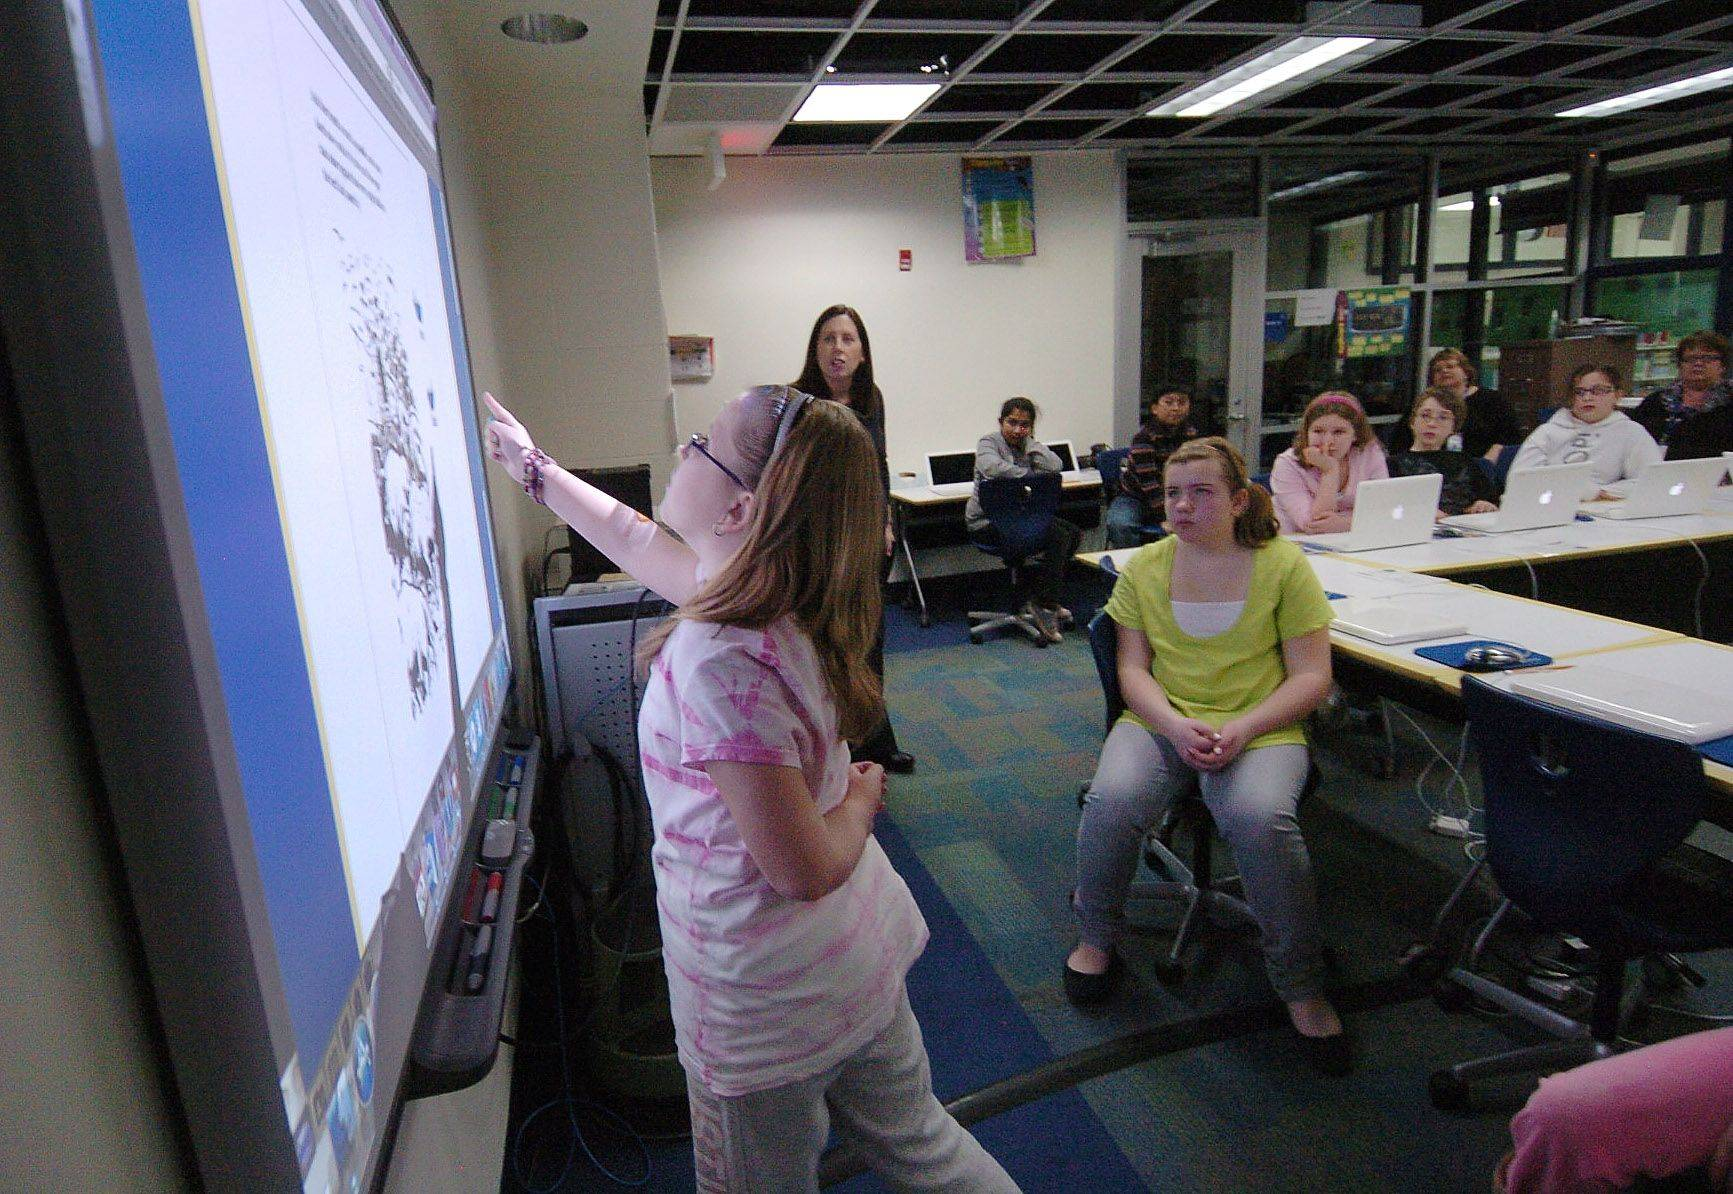 Fifth-grader Emily Modloff uses the electronic whiteboard during a reading lesson in Des Plaines Elementary District 62's Technology-Integrated Learning Environment classroom at Cumberland School in Des Plaines. District 62 is one of the few suburban districts able to afford such technology upgrades in today's economy.